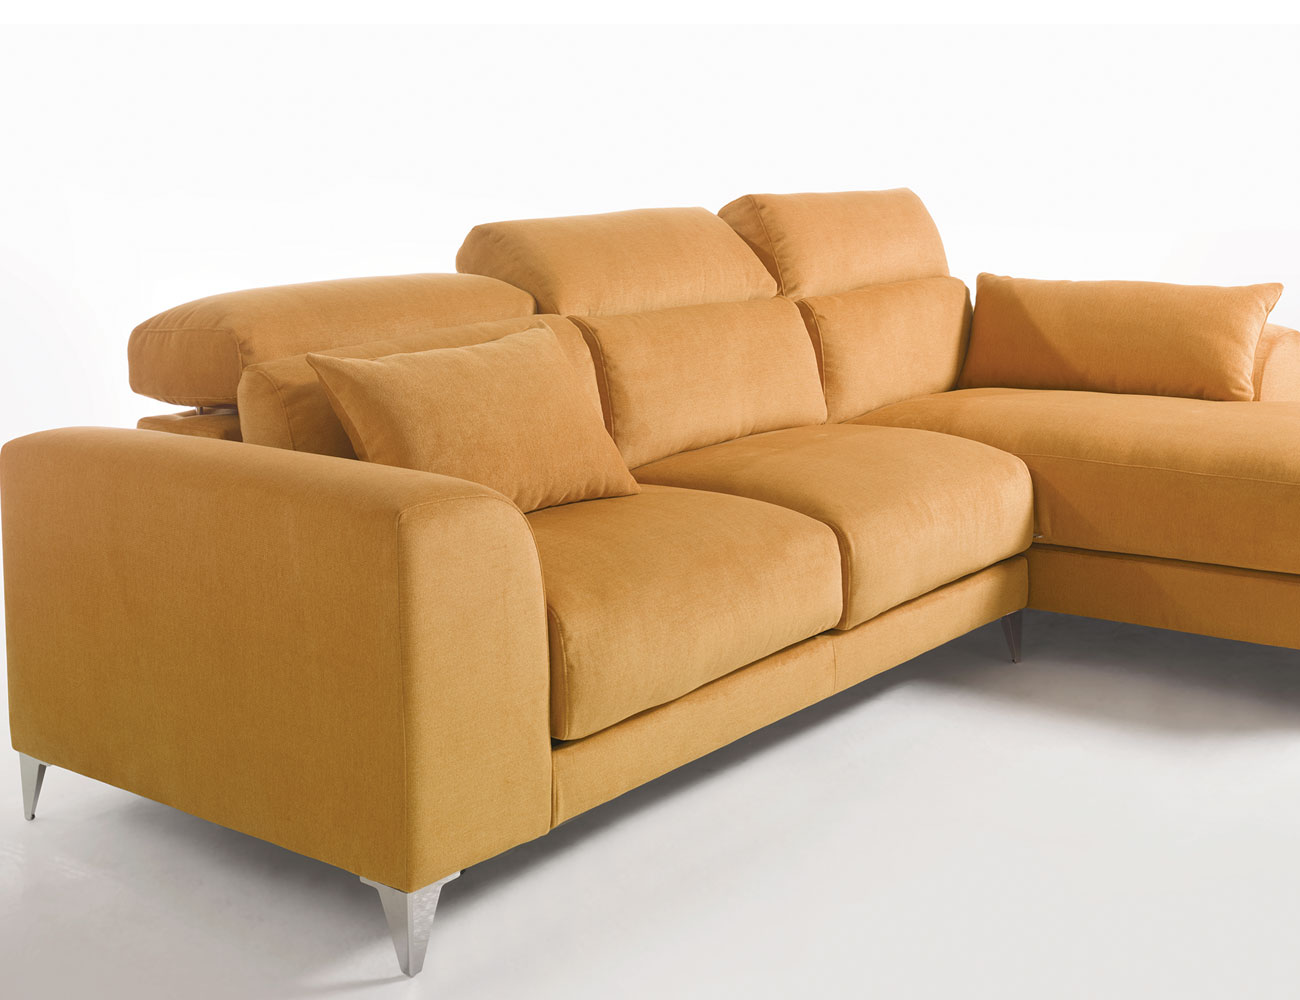 Sofa chaiselongue gran lujo decorativo patas altas amarillo 235